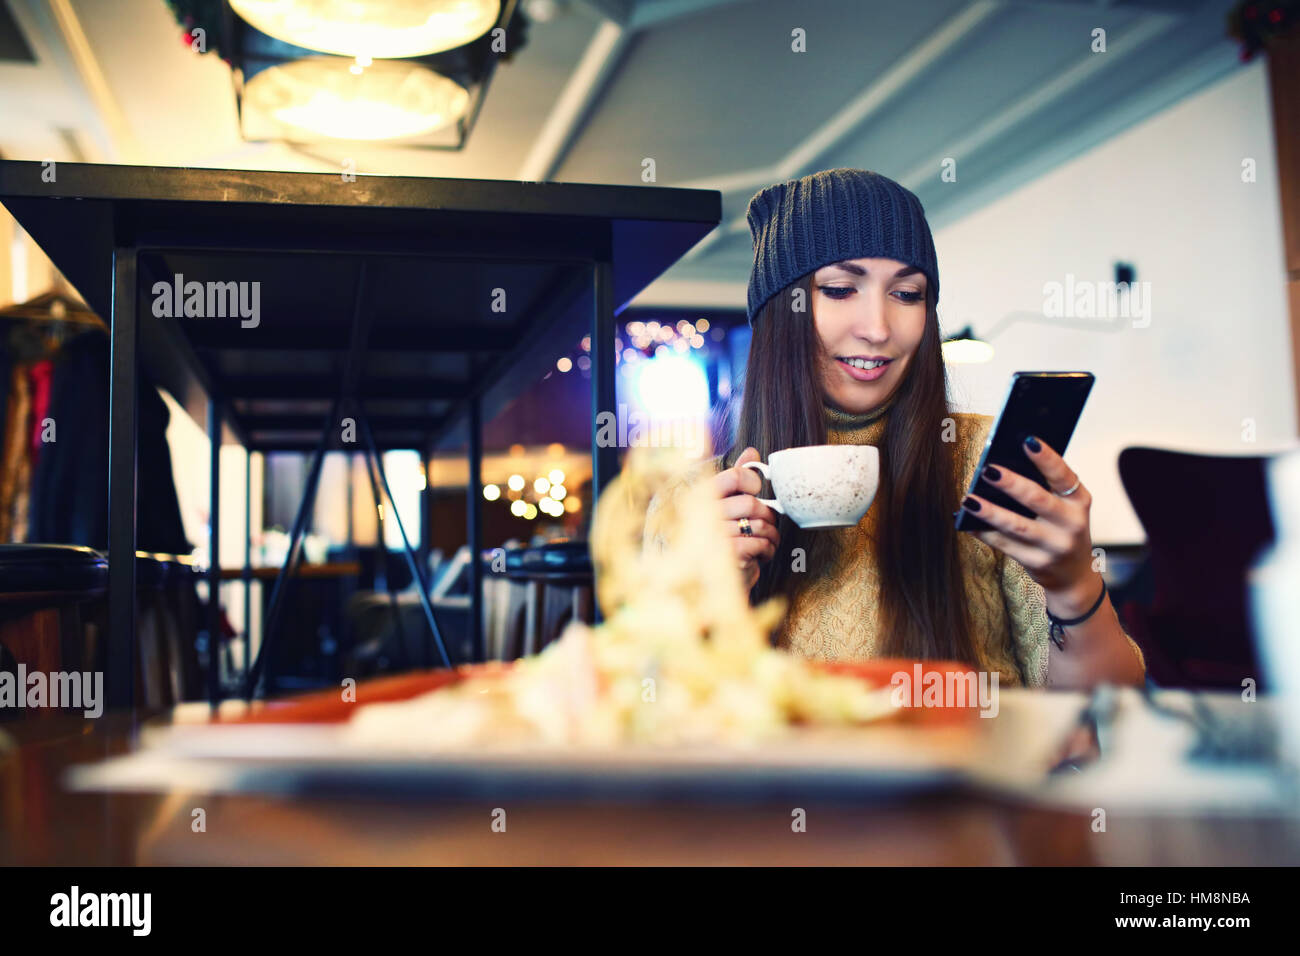 Portret of young female reading sms on the phone in cafe. Tonned. Selective focus. - Stock Image